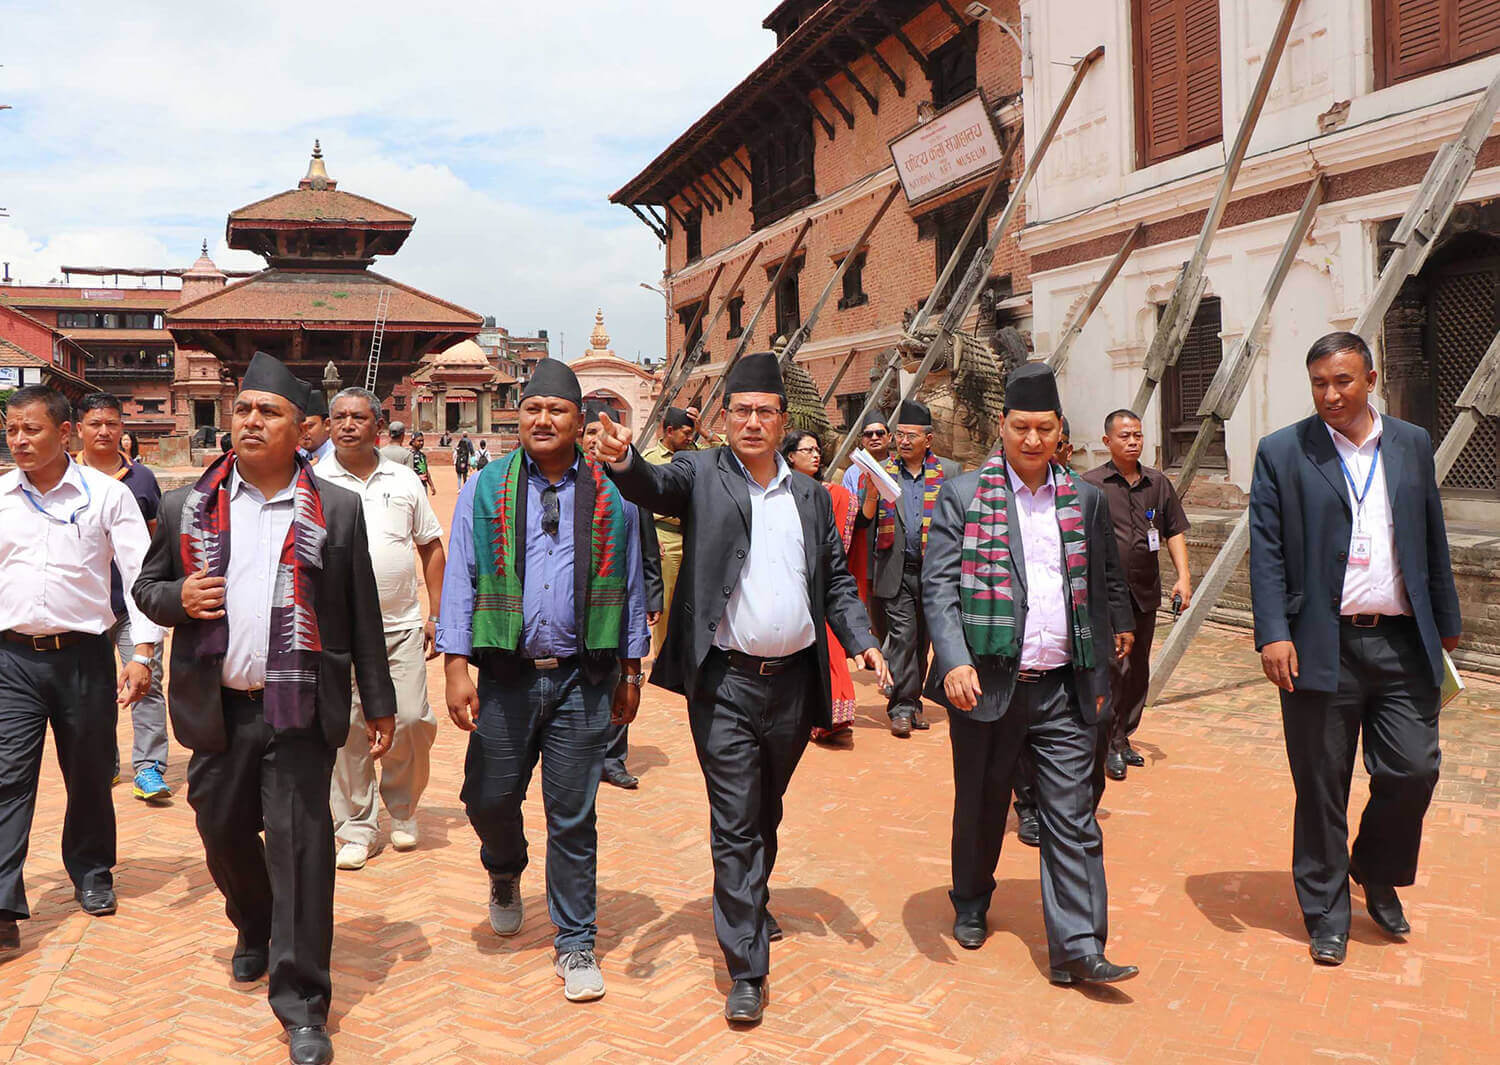 Bhaktapur reconstruction observation